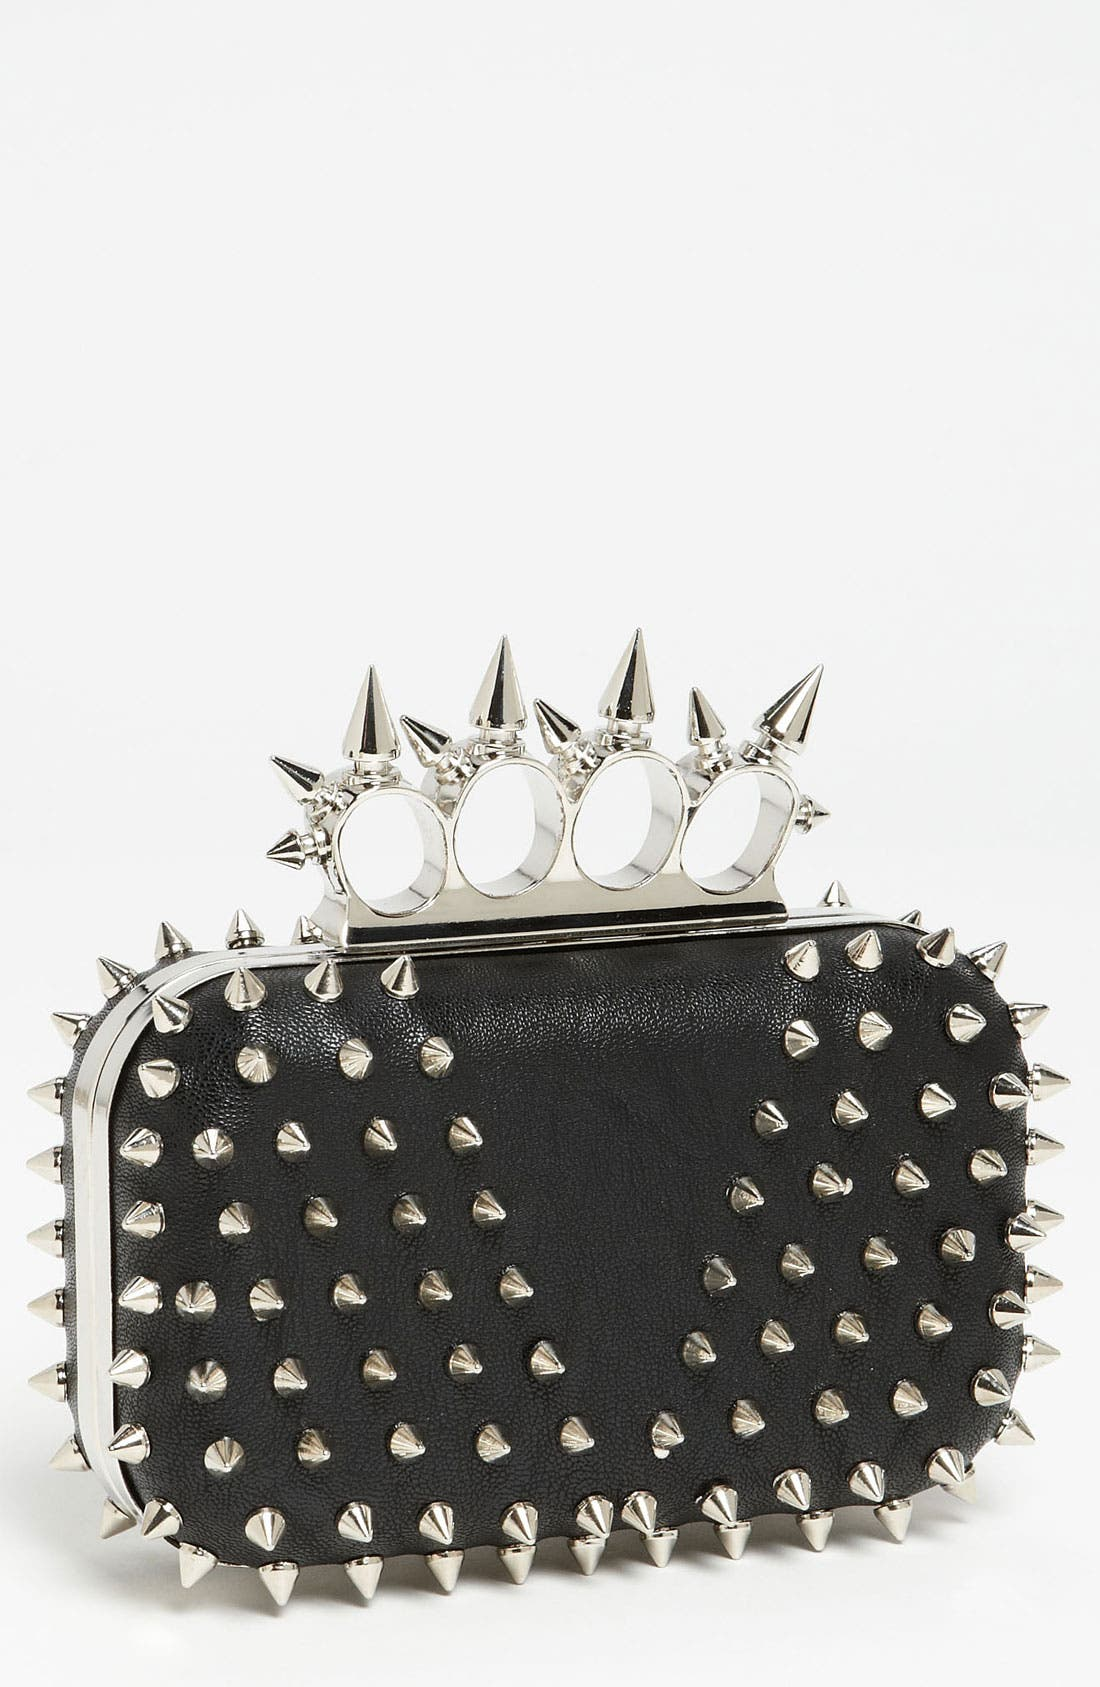 Main Image - Natasha Couture 'Small' Spiked Clutch